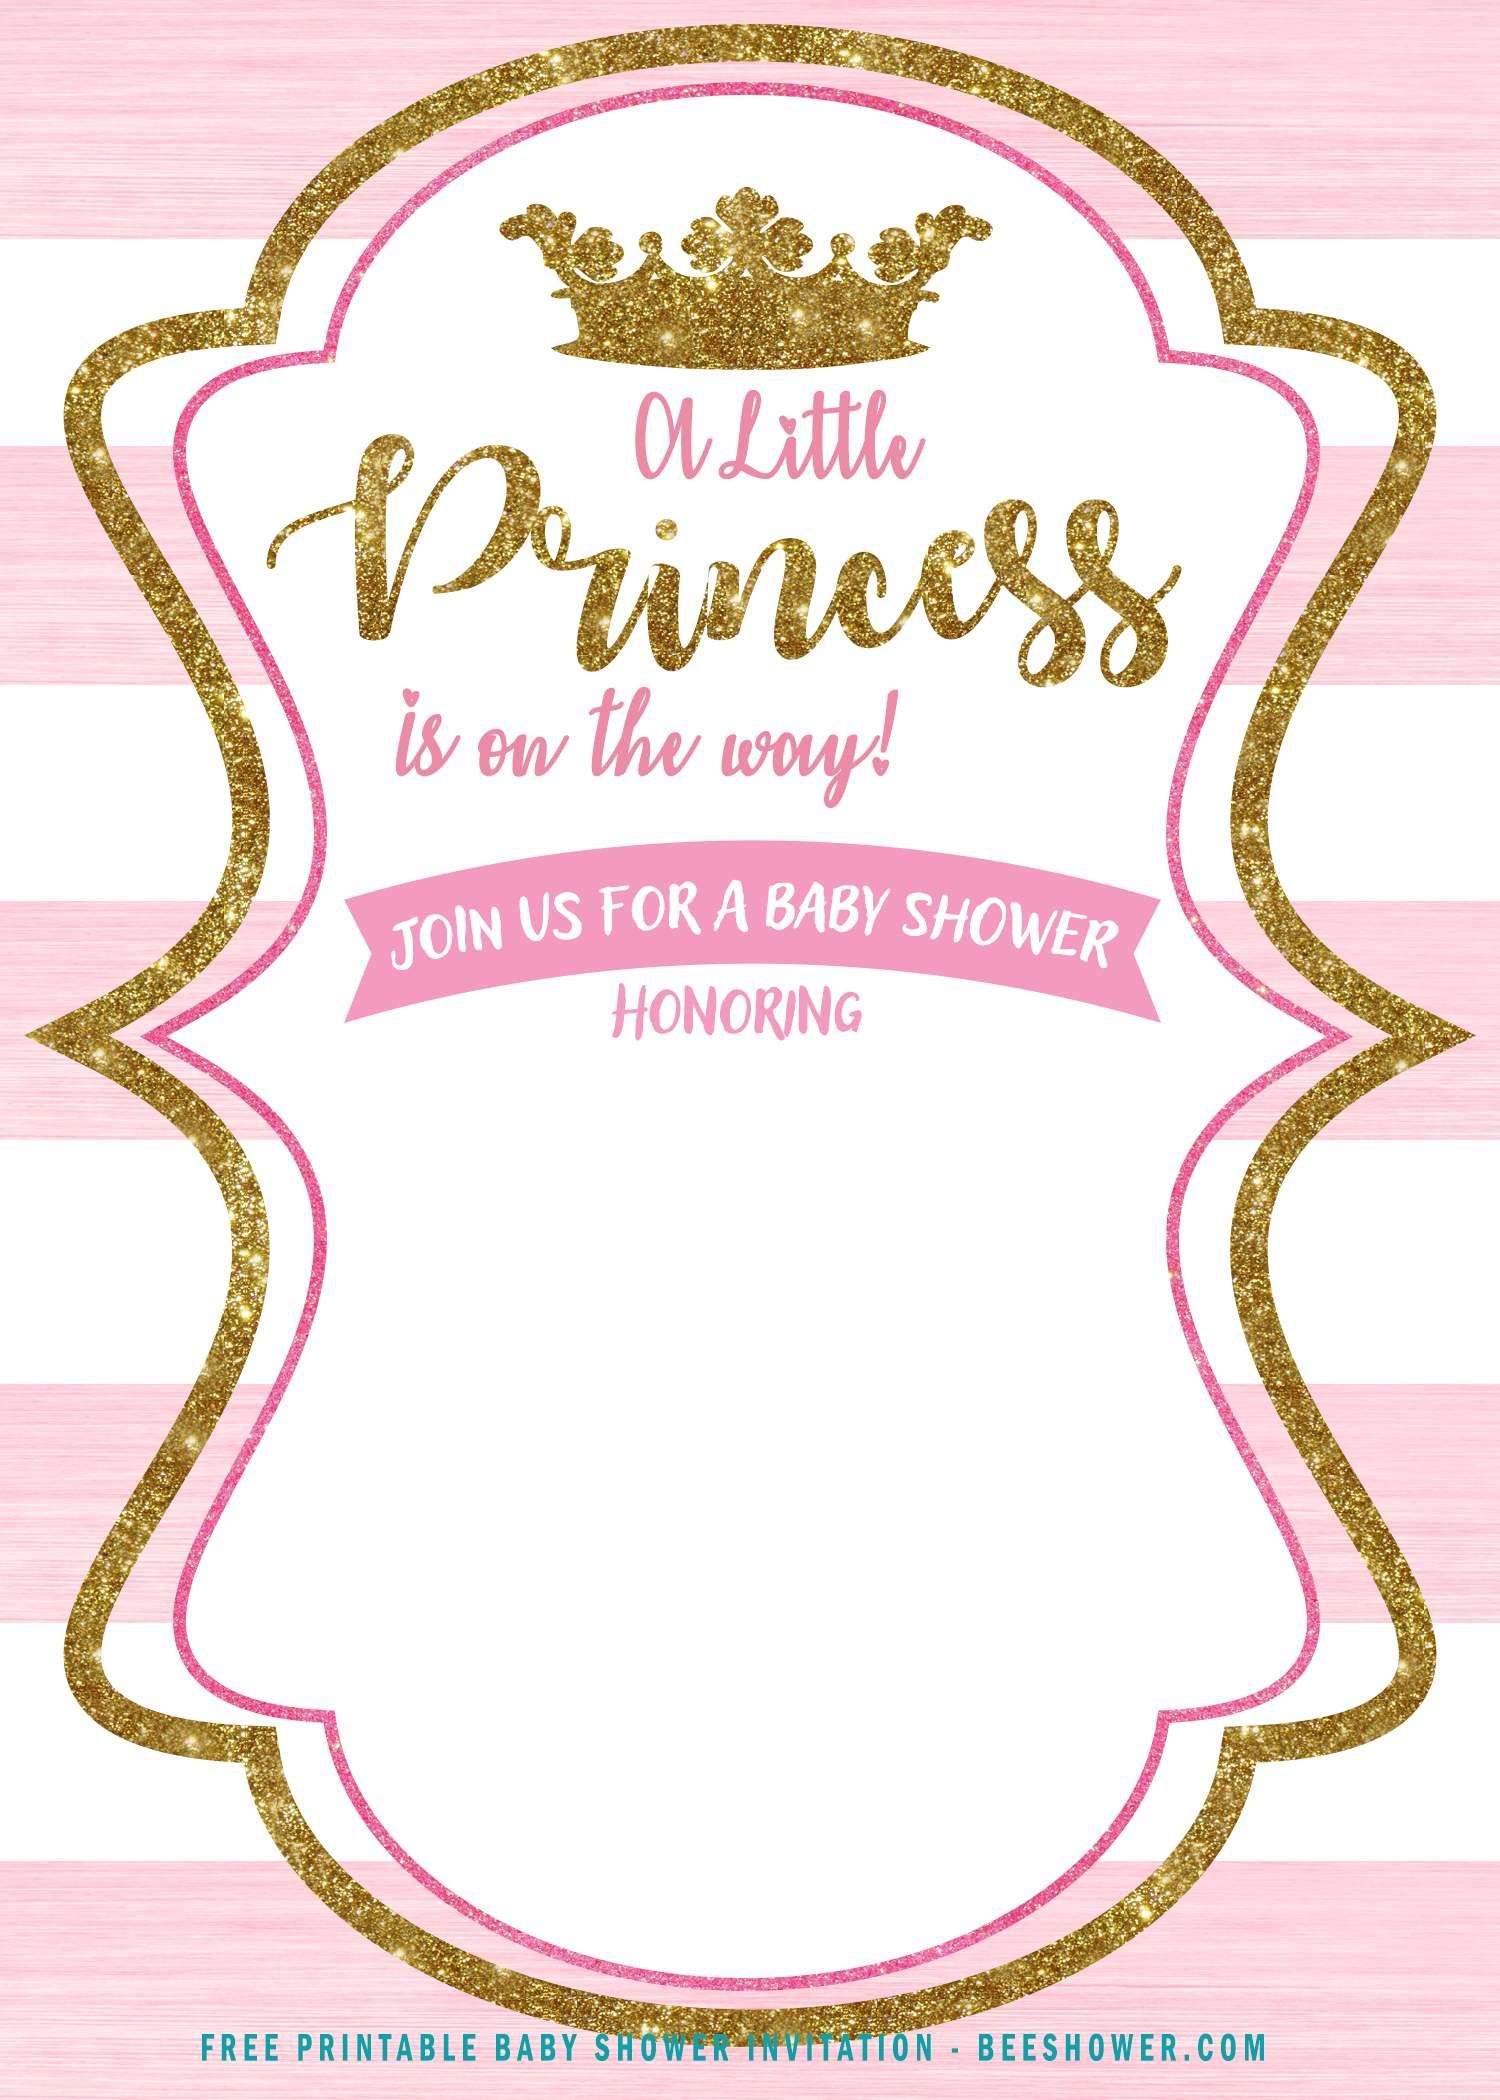 007 Archaicawful Princes Baby Shower Invitation Template Highest Clarity  Templates Little Royal Red DisneyFull